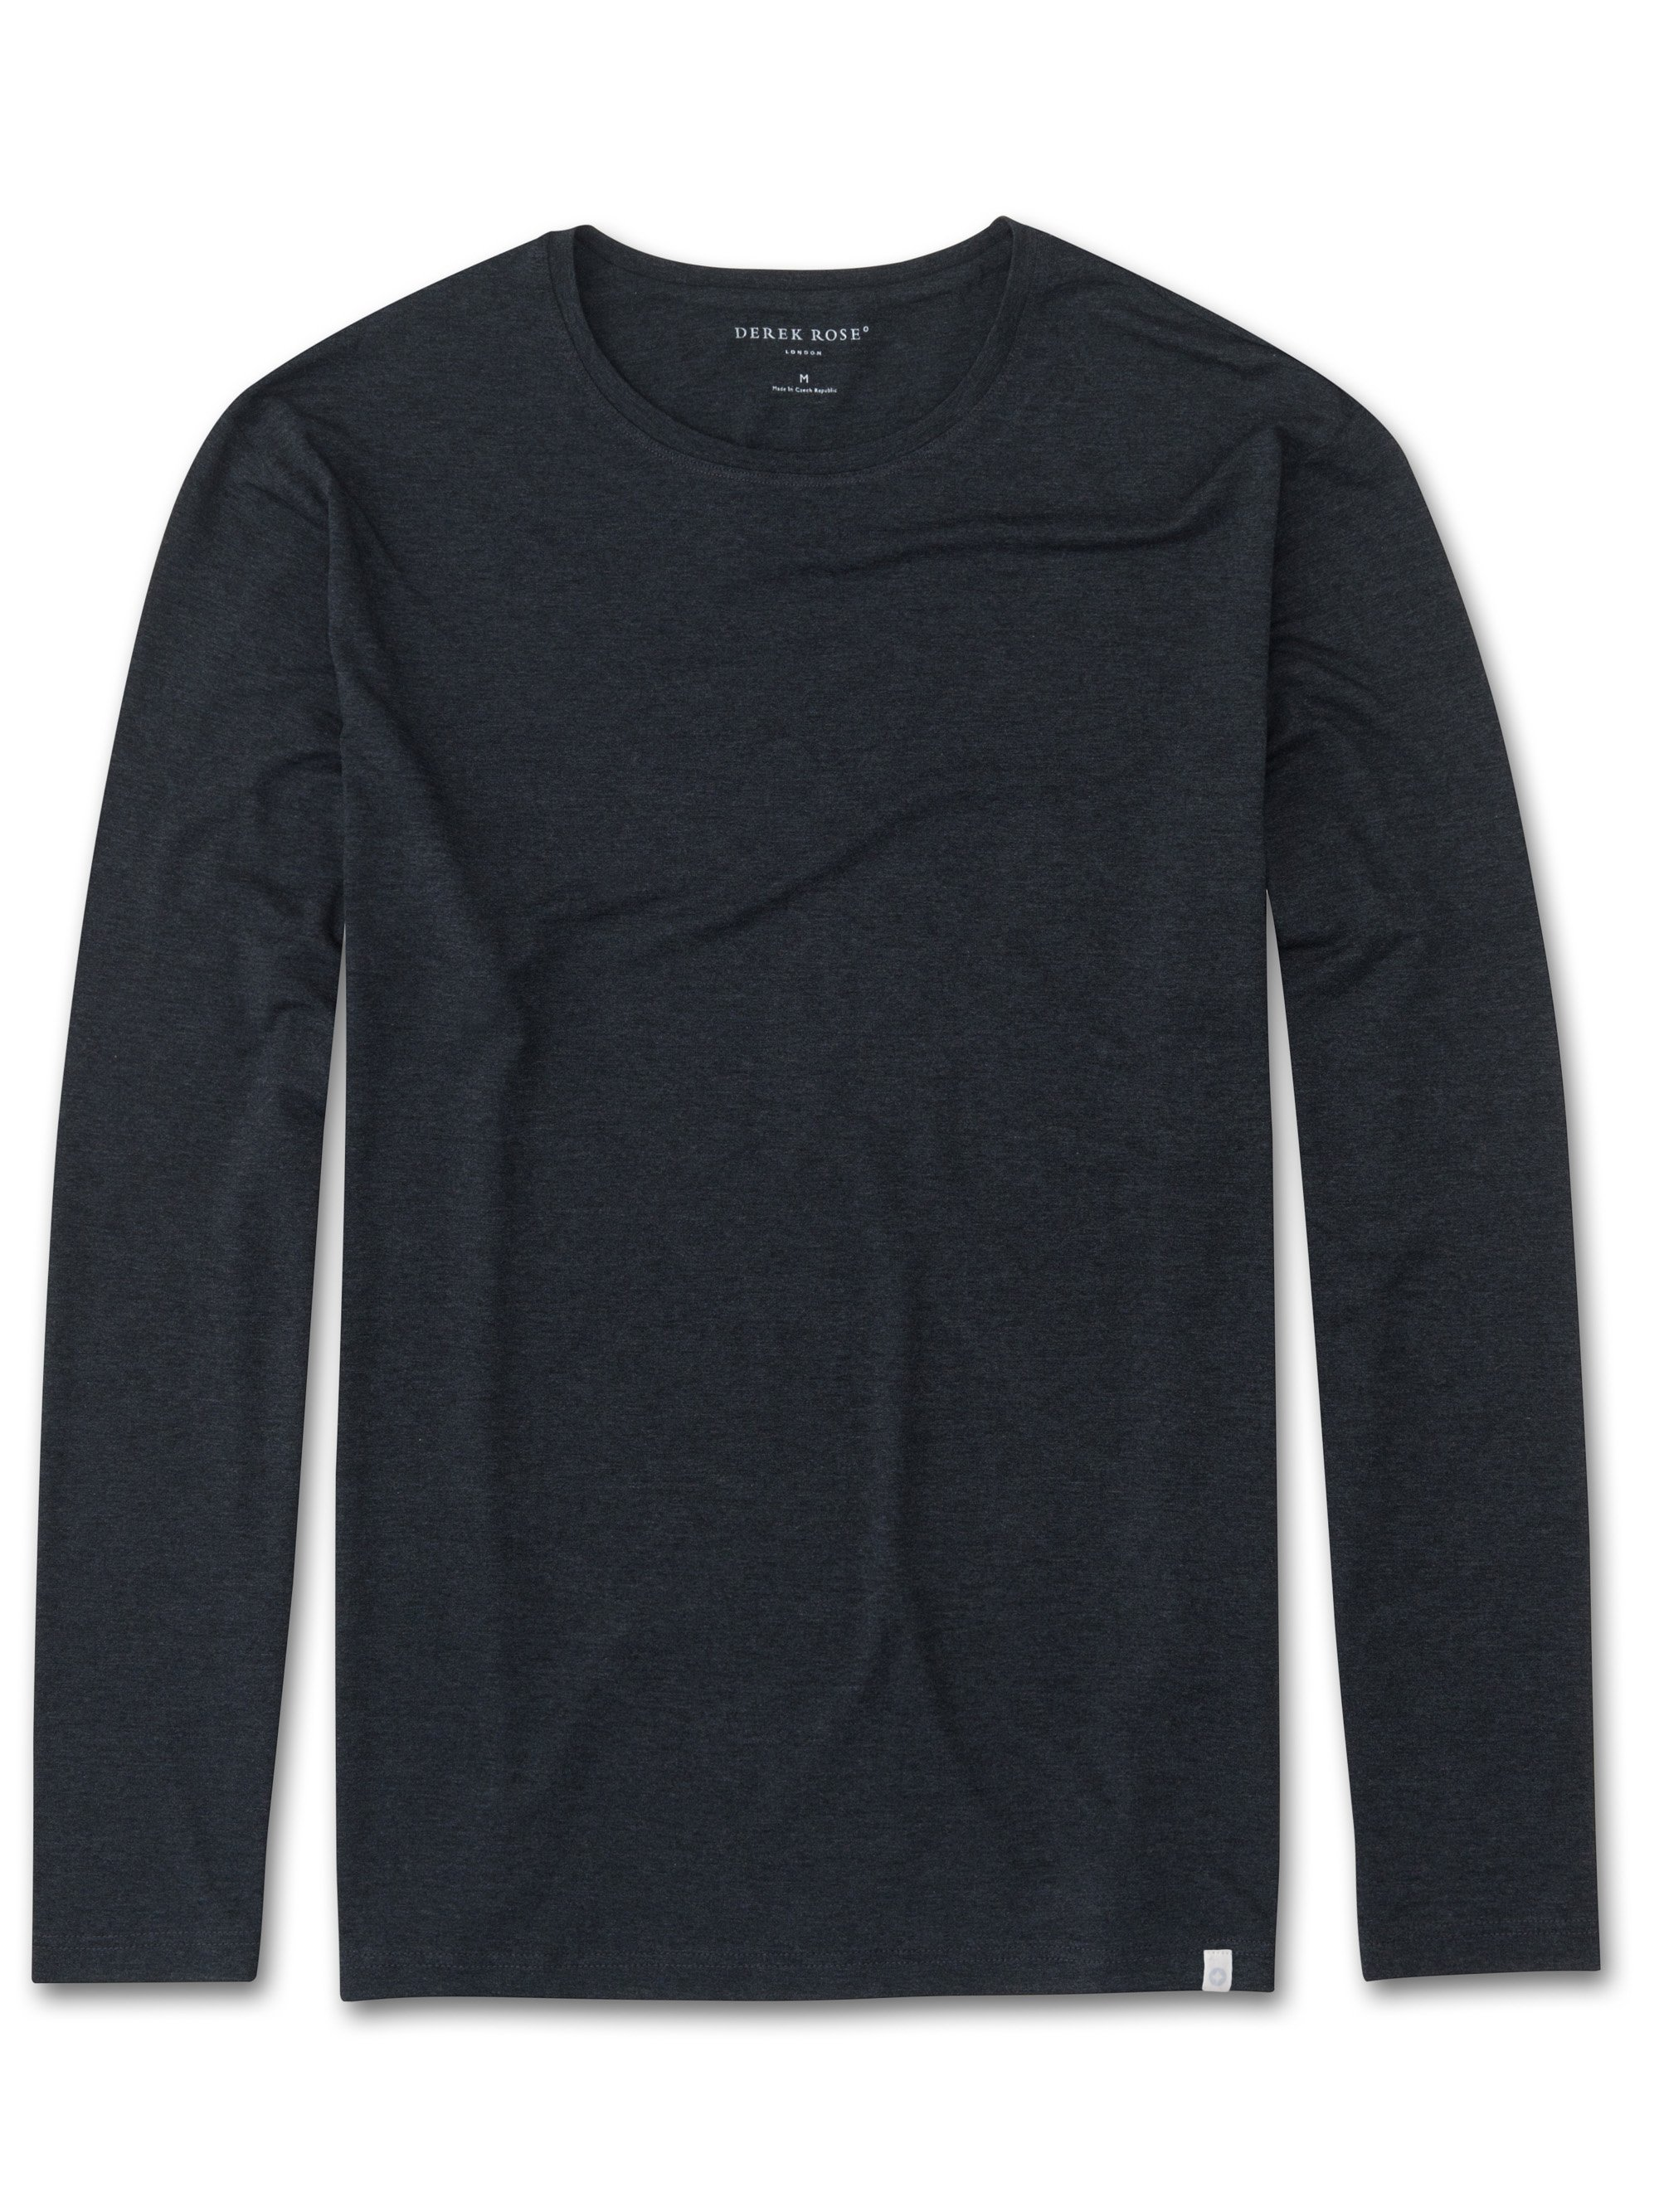 Men's Long Sleeve T-Shirt Marlowe Micro Modal Stretch Anthracite